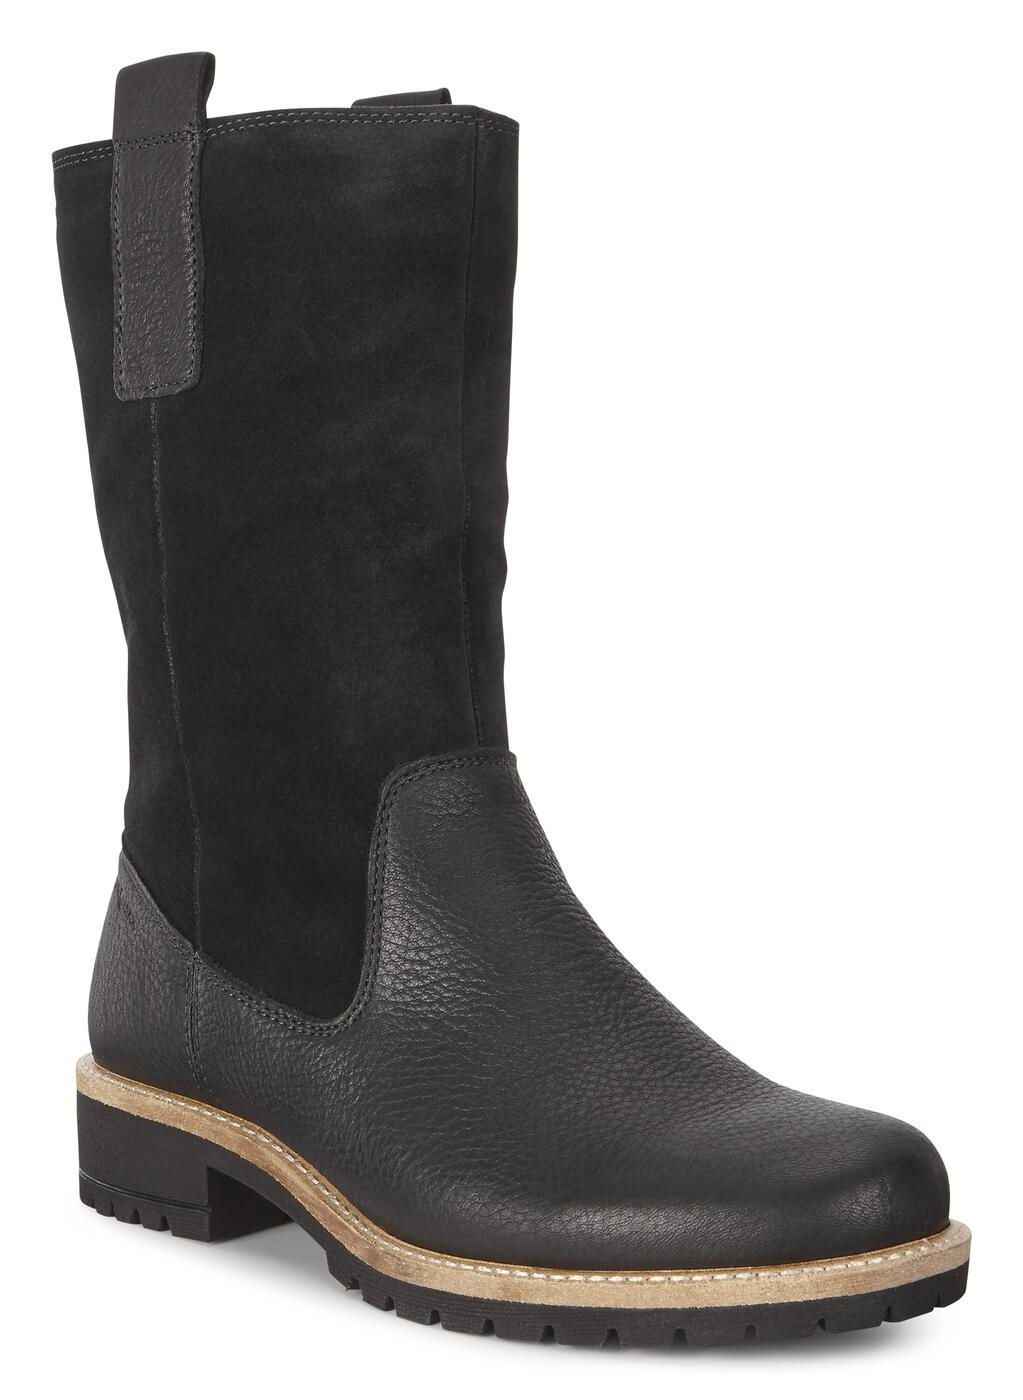 ECCO ELAINE High-cut Boot